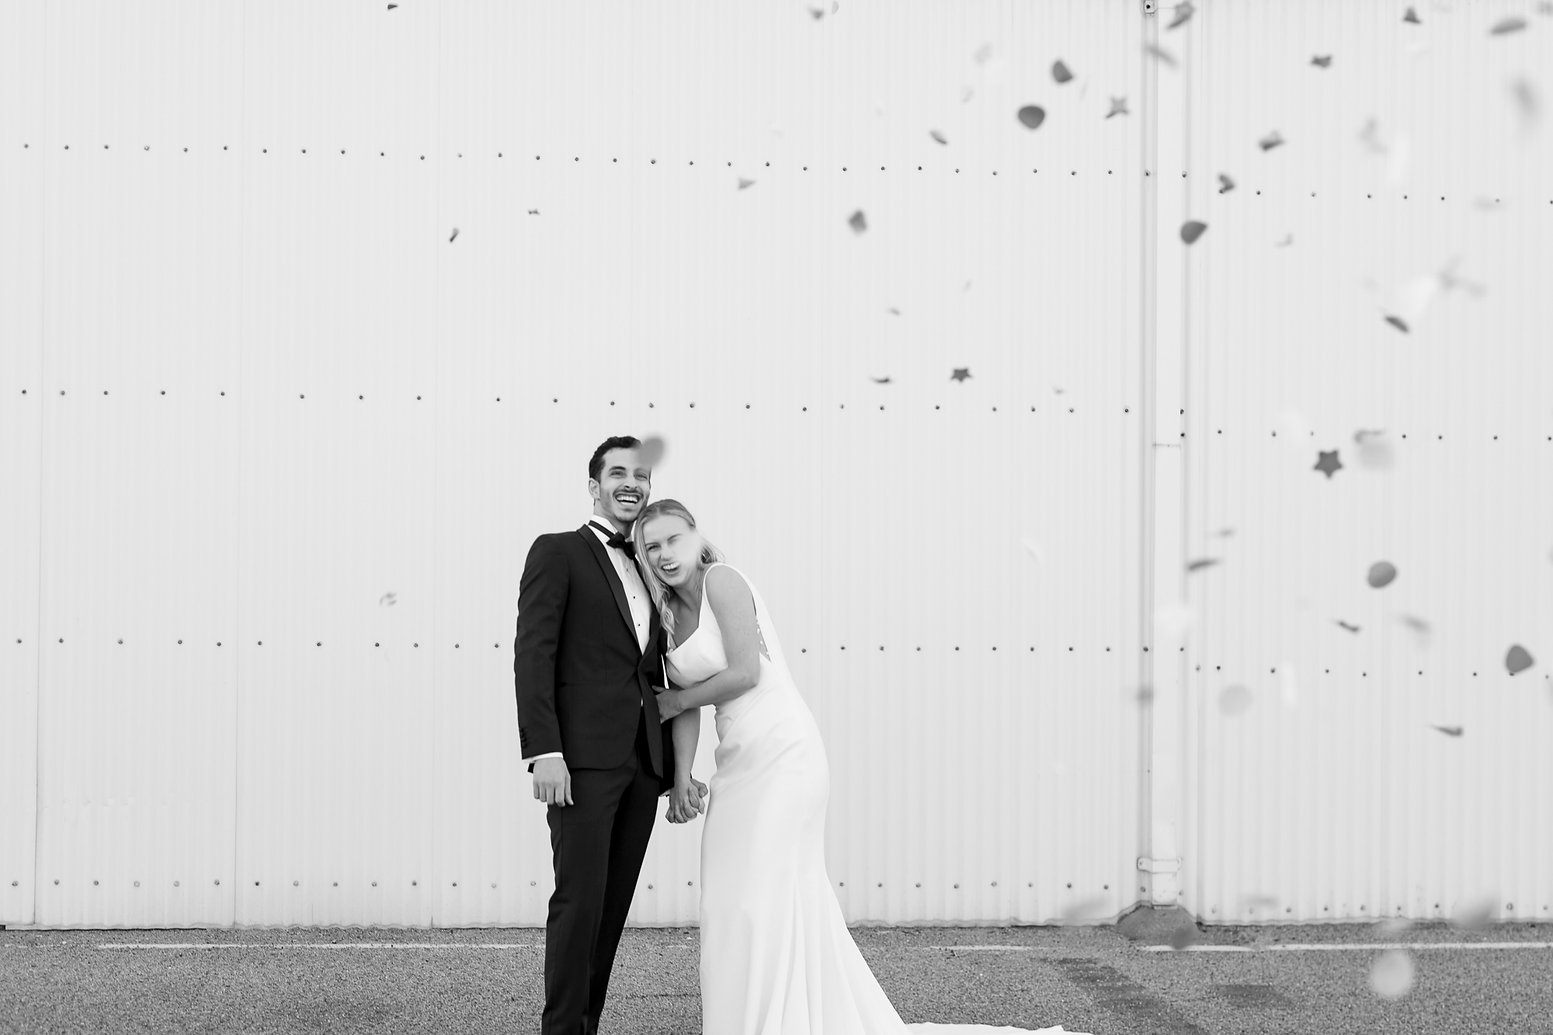 Kath Young Photography Perth Wedding and